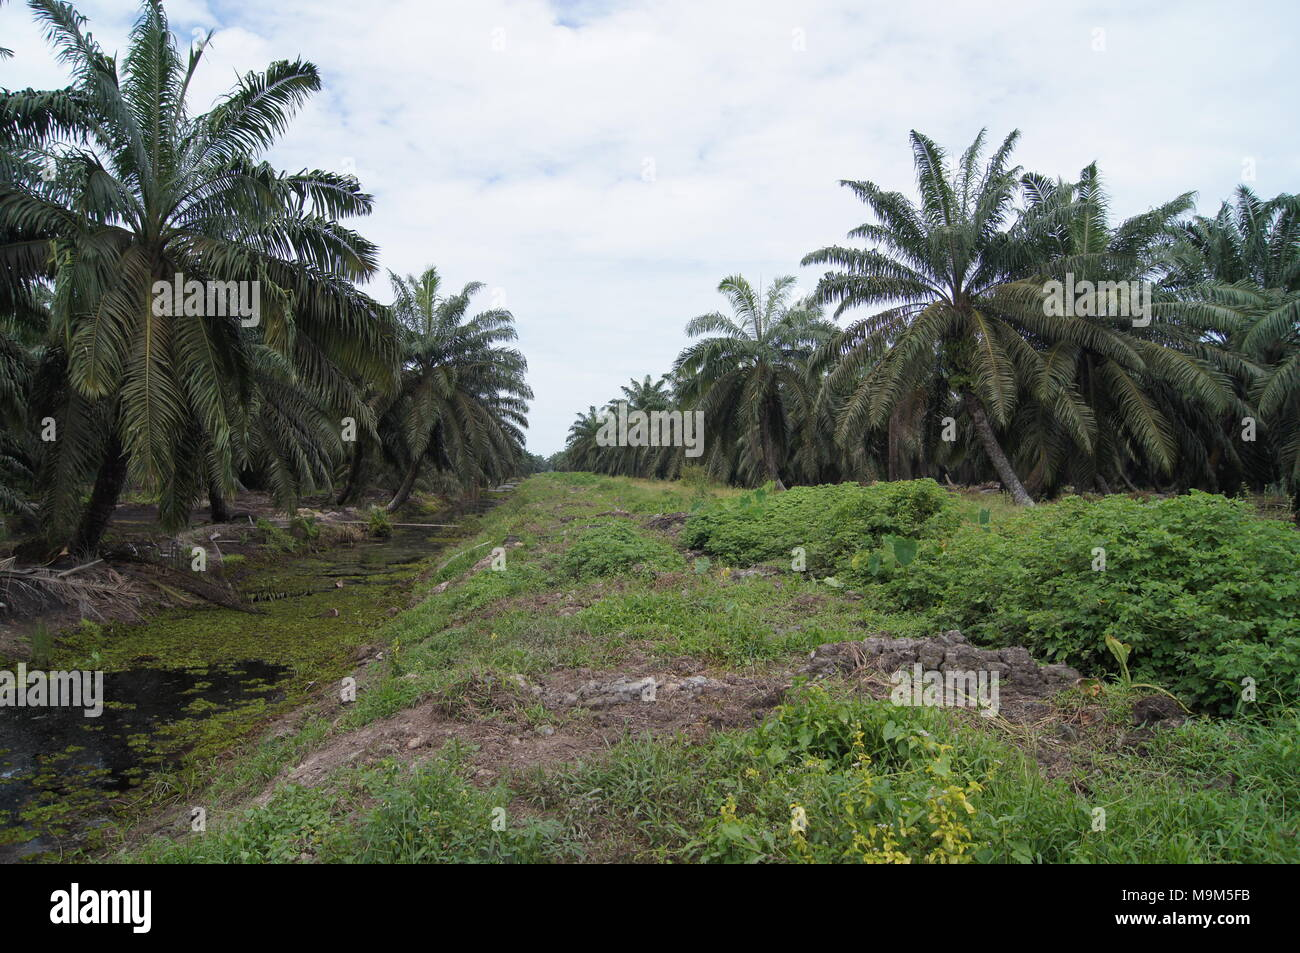 Oil Palm Industries for food and earning - Stock Image